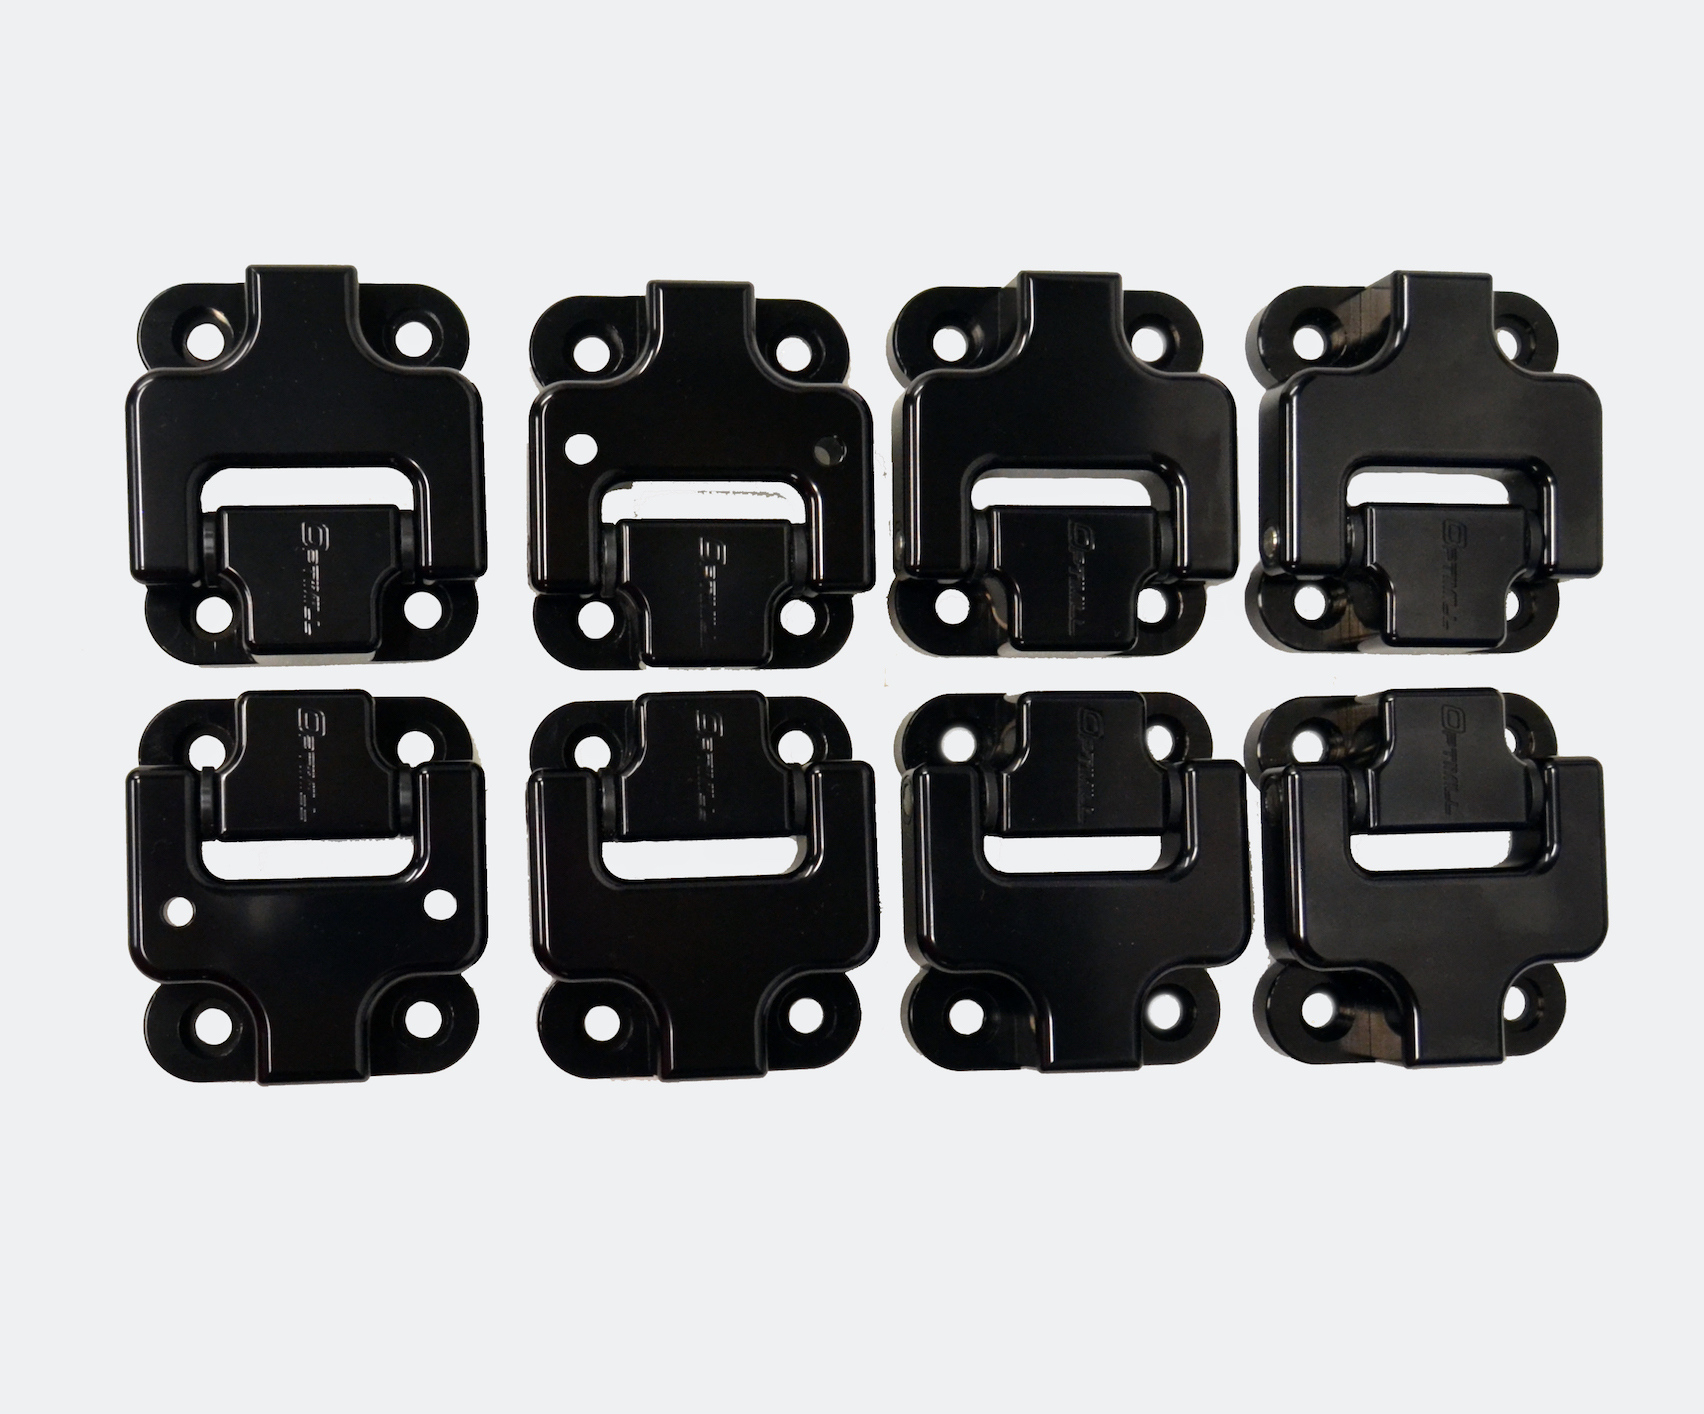 Landrover Defender Front Door Hinges 110 set of 8 in Black